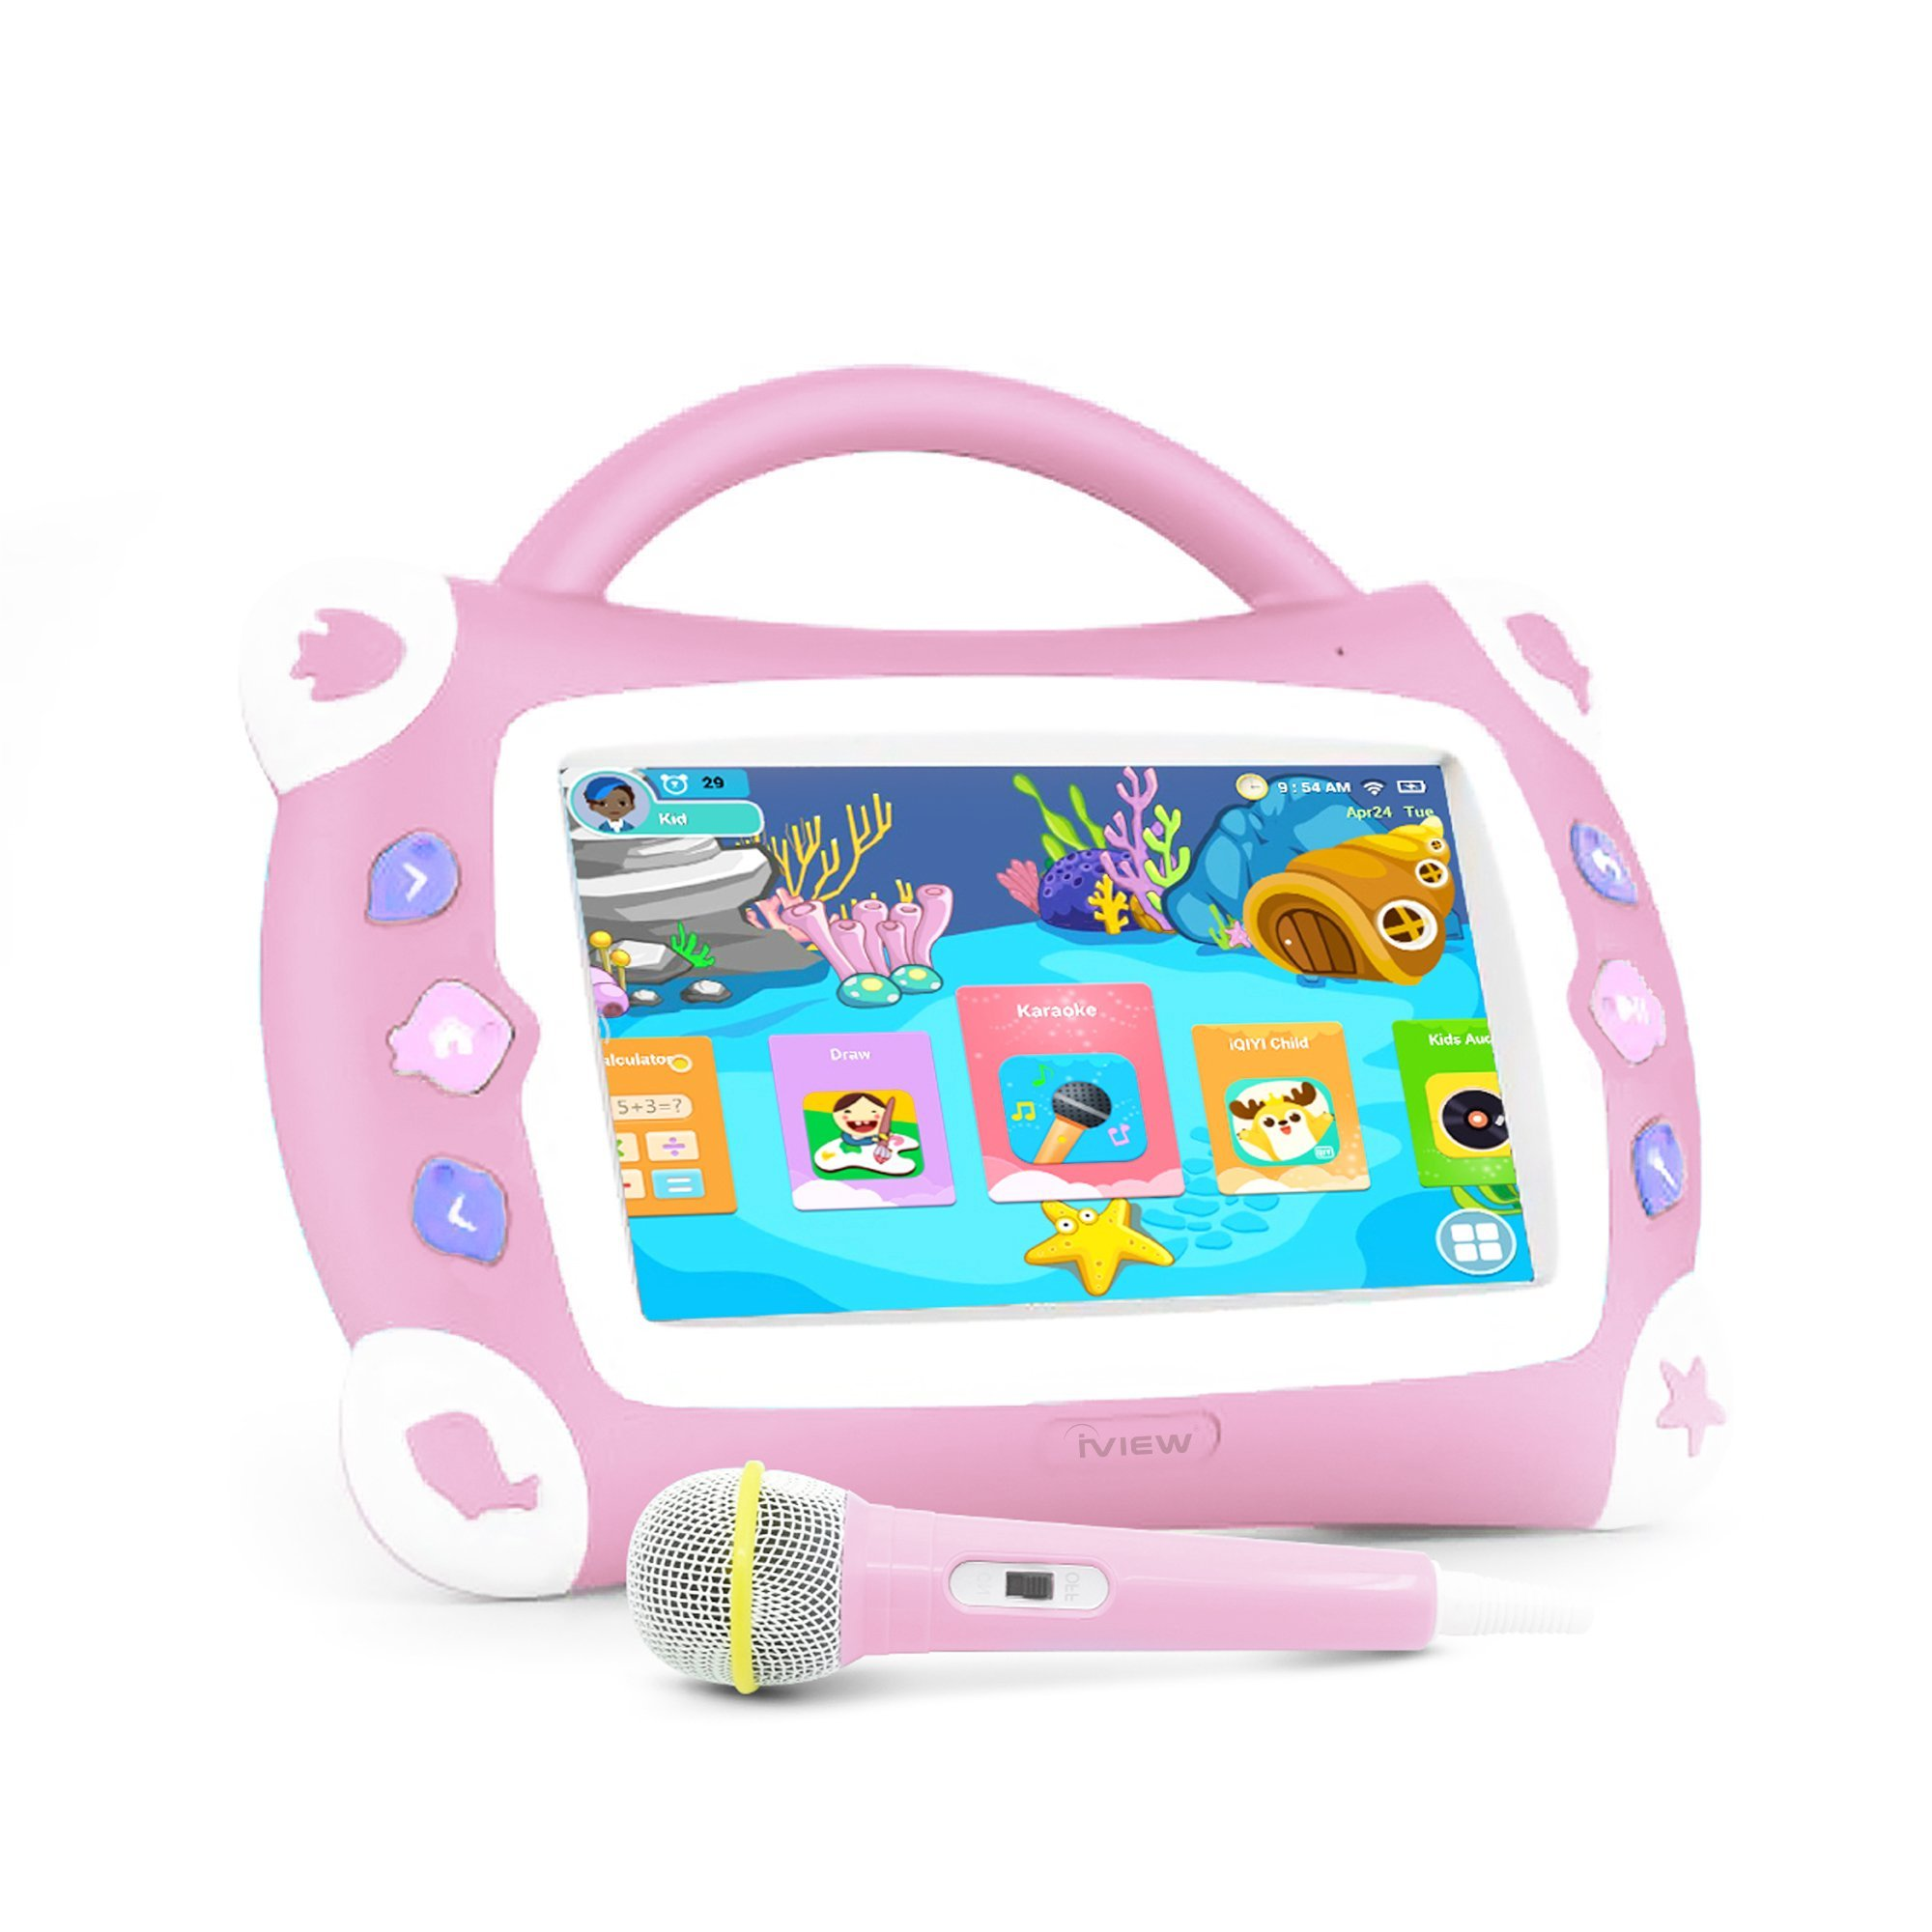 iView Sing Pad 711TPC, 7'' Kids Tablet with WiFi, Microphone, Preloaded Children's Games, Karaoke, Parental Control, Tablet Case with Built-in Stand by IVIEW (Image #1)